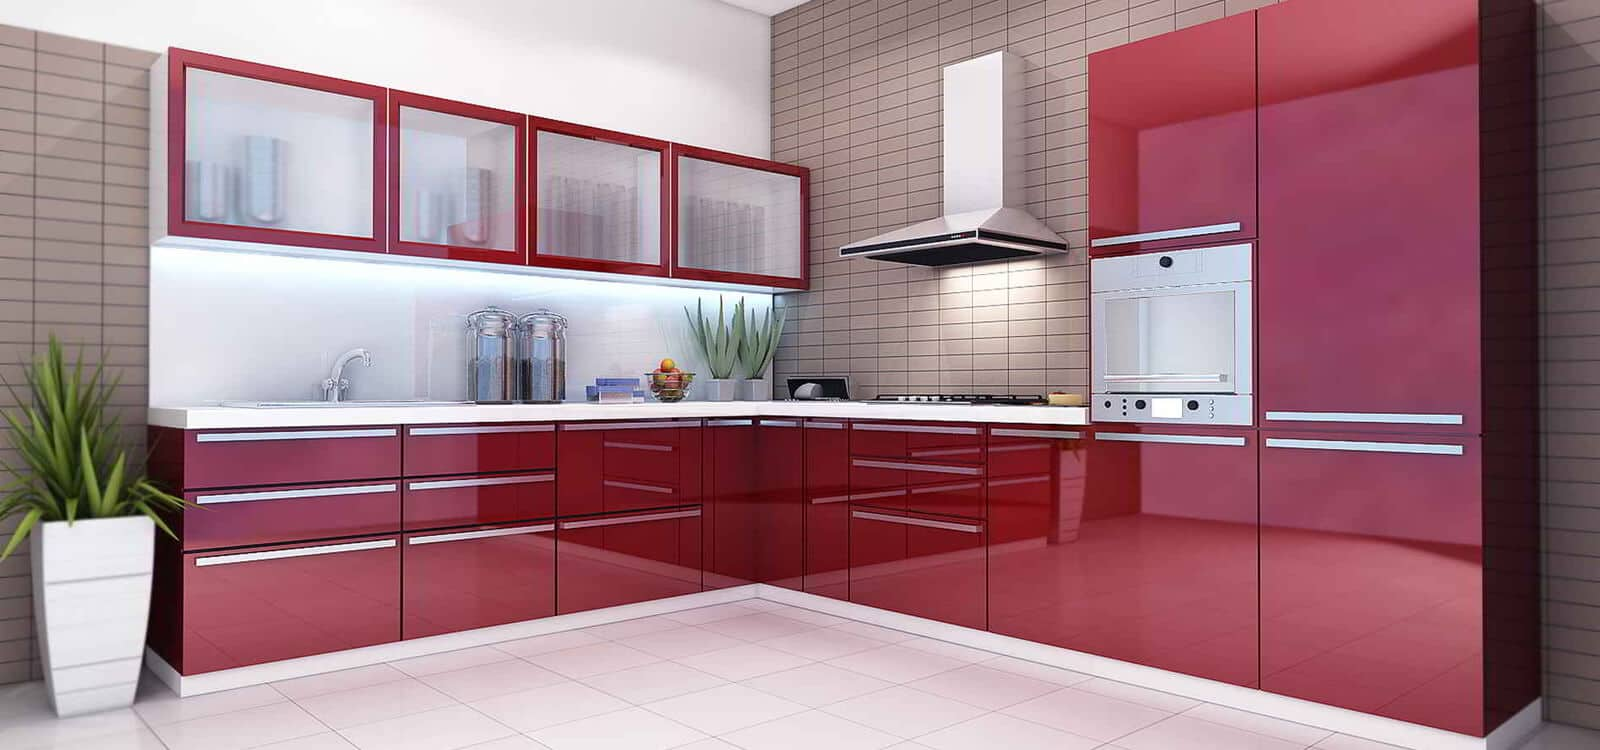 kitchen interior design photos bangalore photos